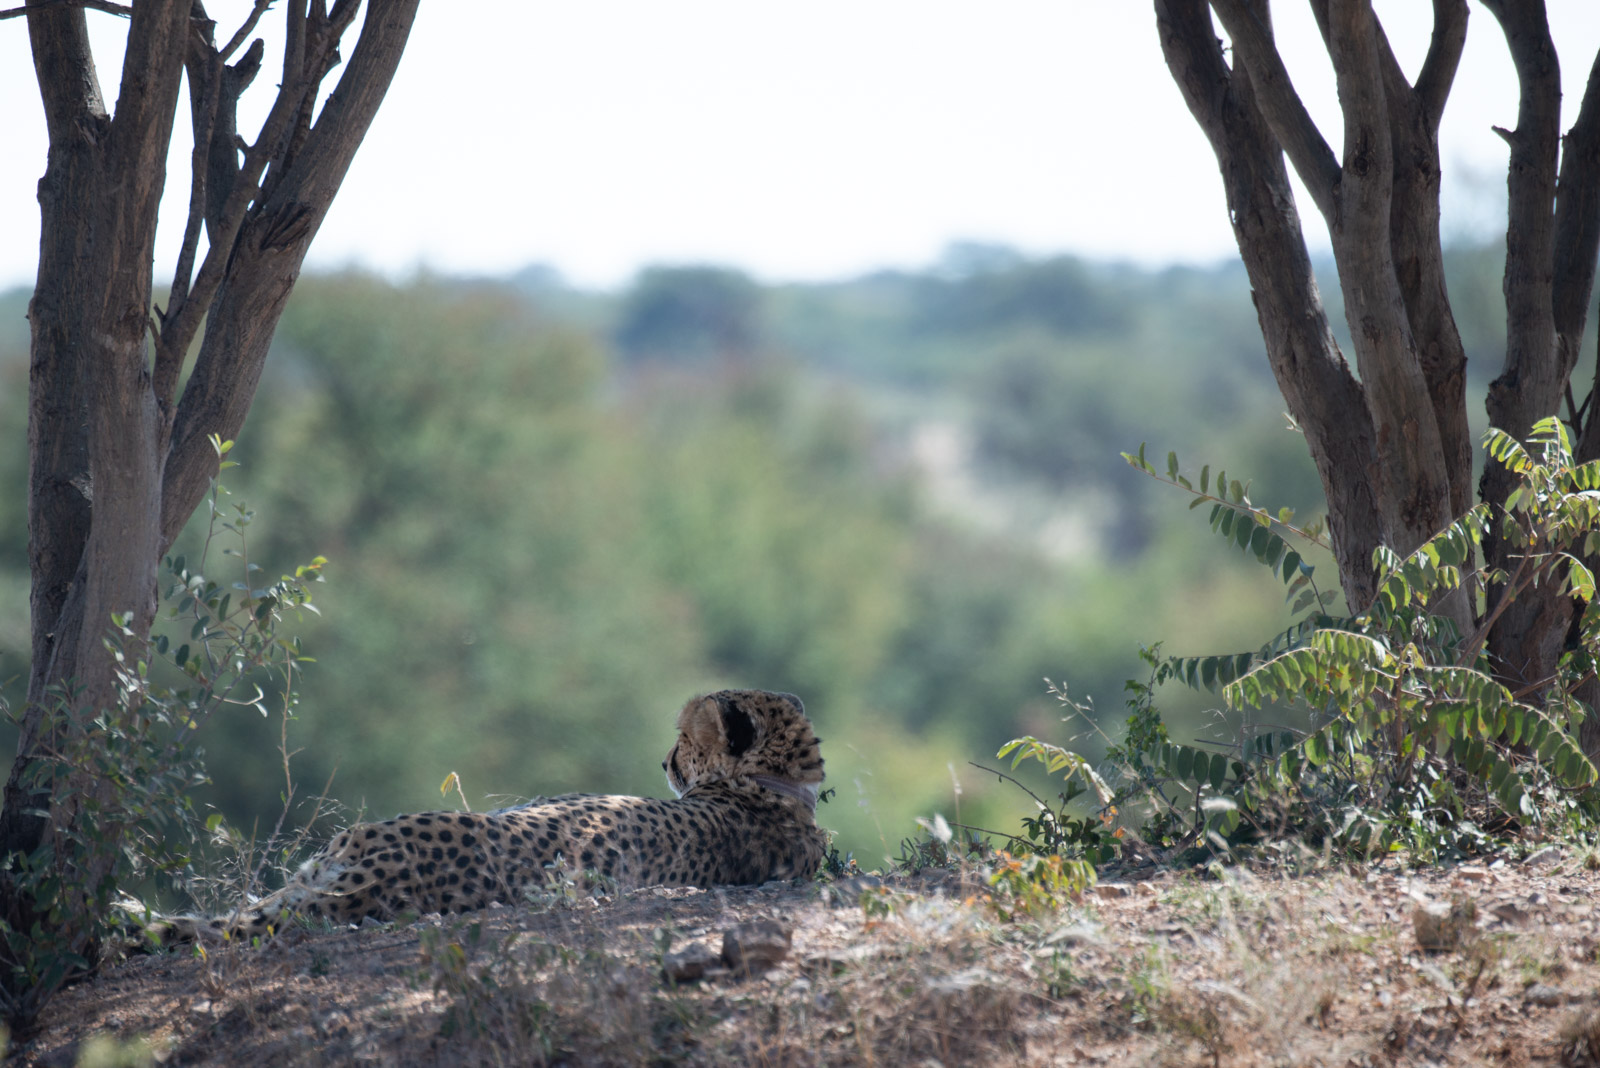 Namibia_Okonjima cheetah under tree-0120921.jpg